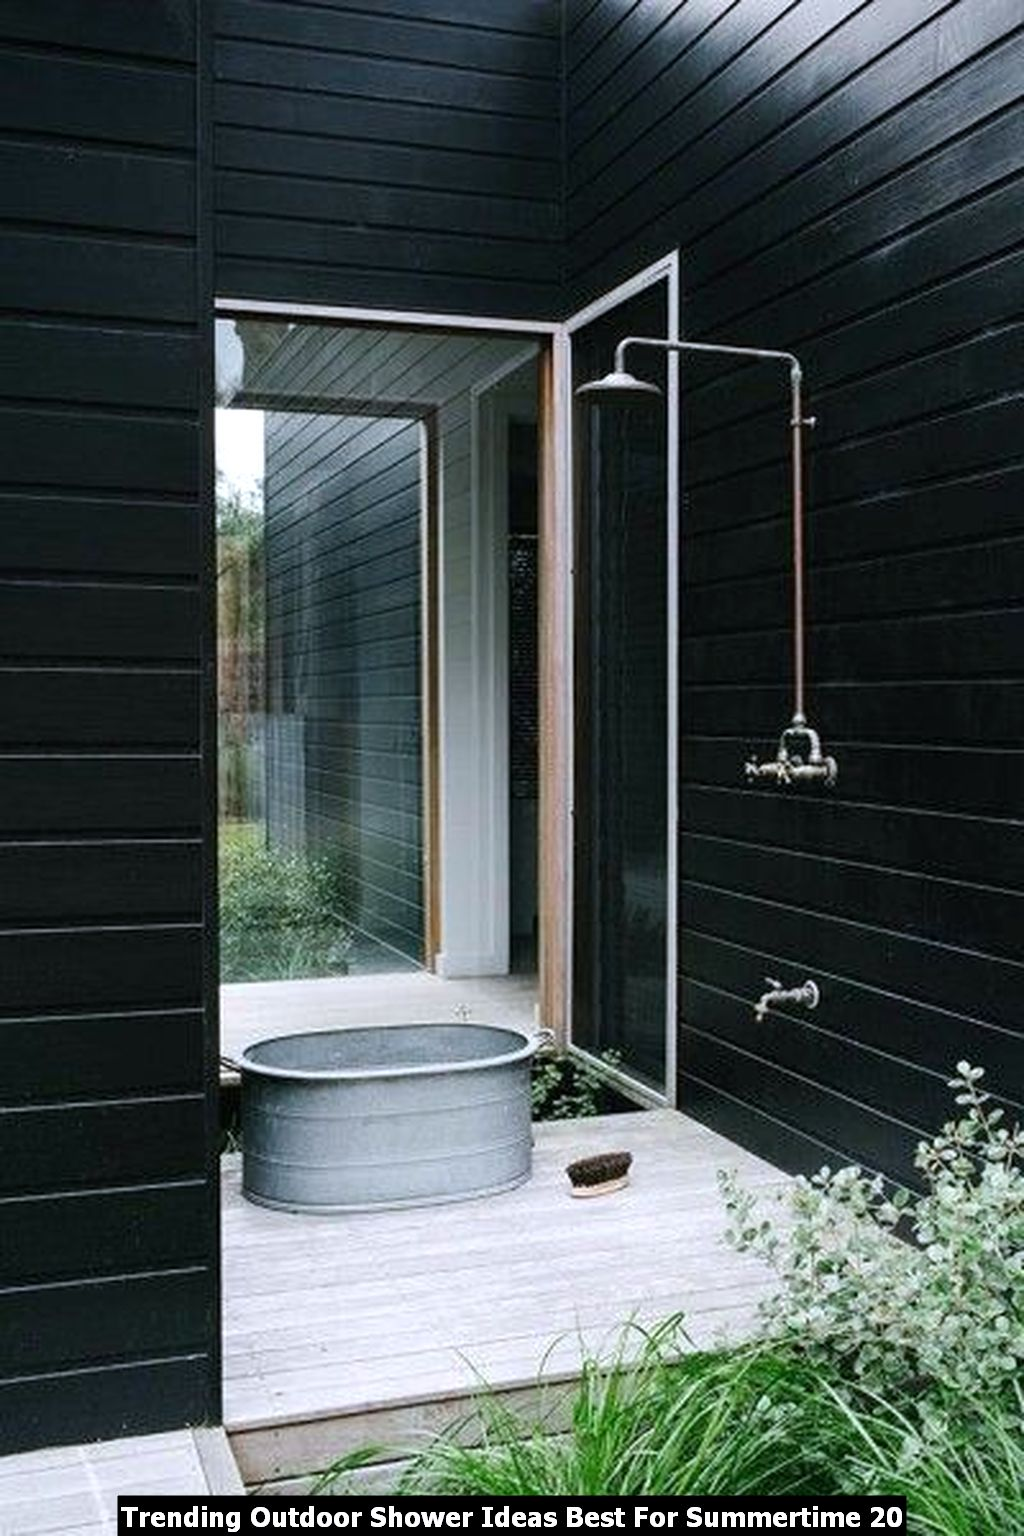 Trending Outdoor Shower Ideas Best For Summertime 20